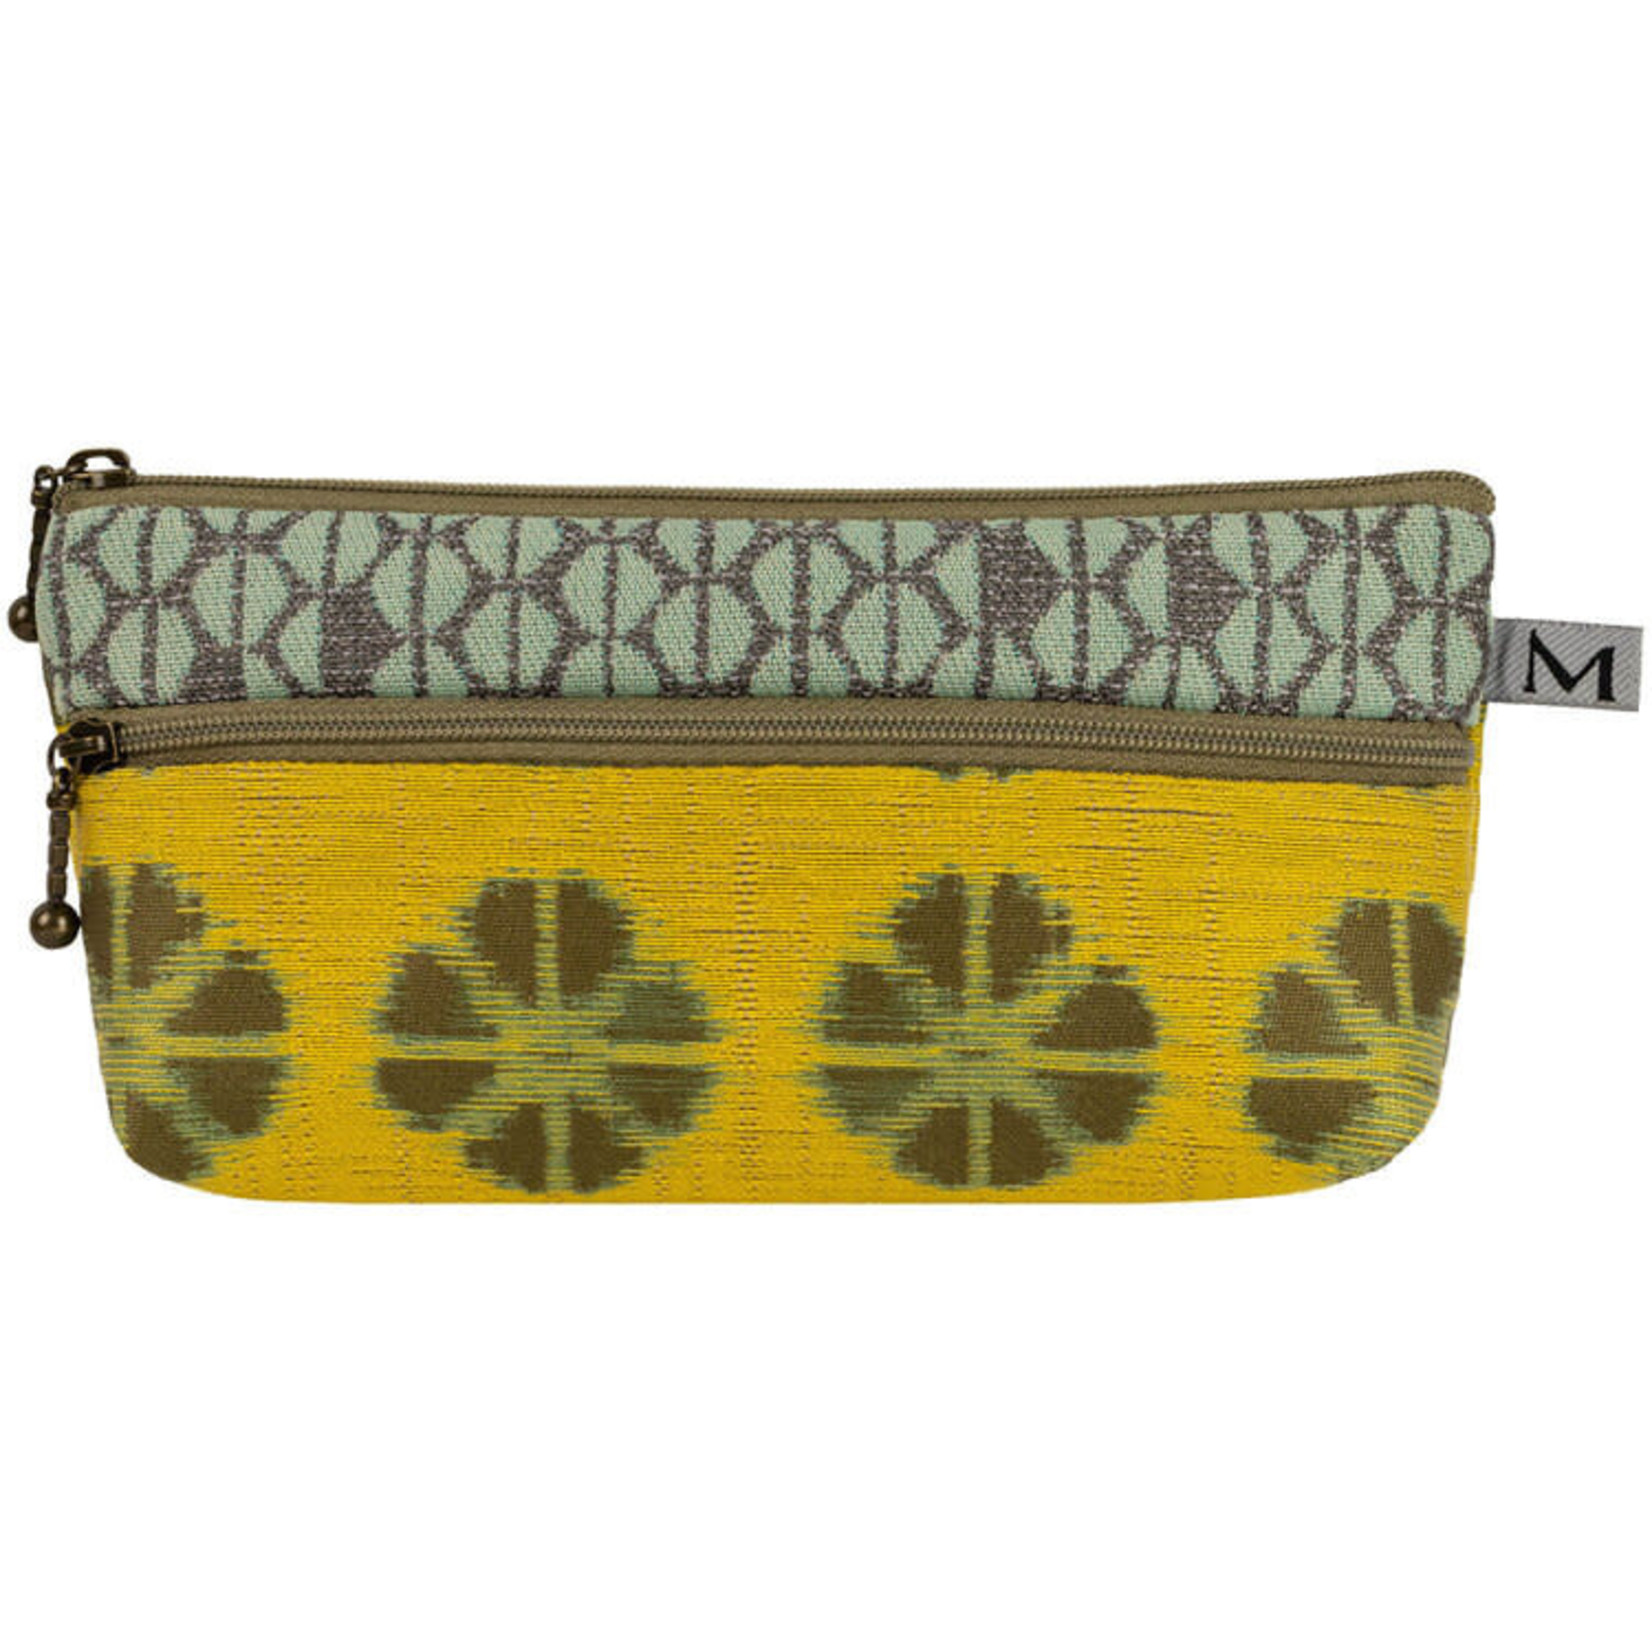 Maruca Design Maruca Heidi Wallet in